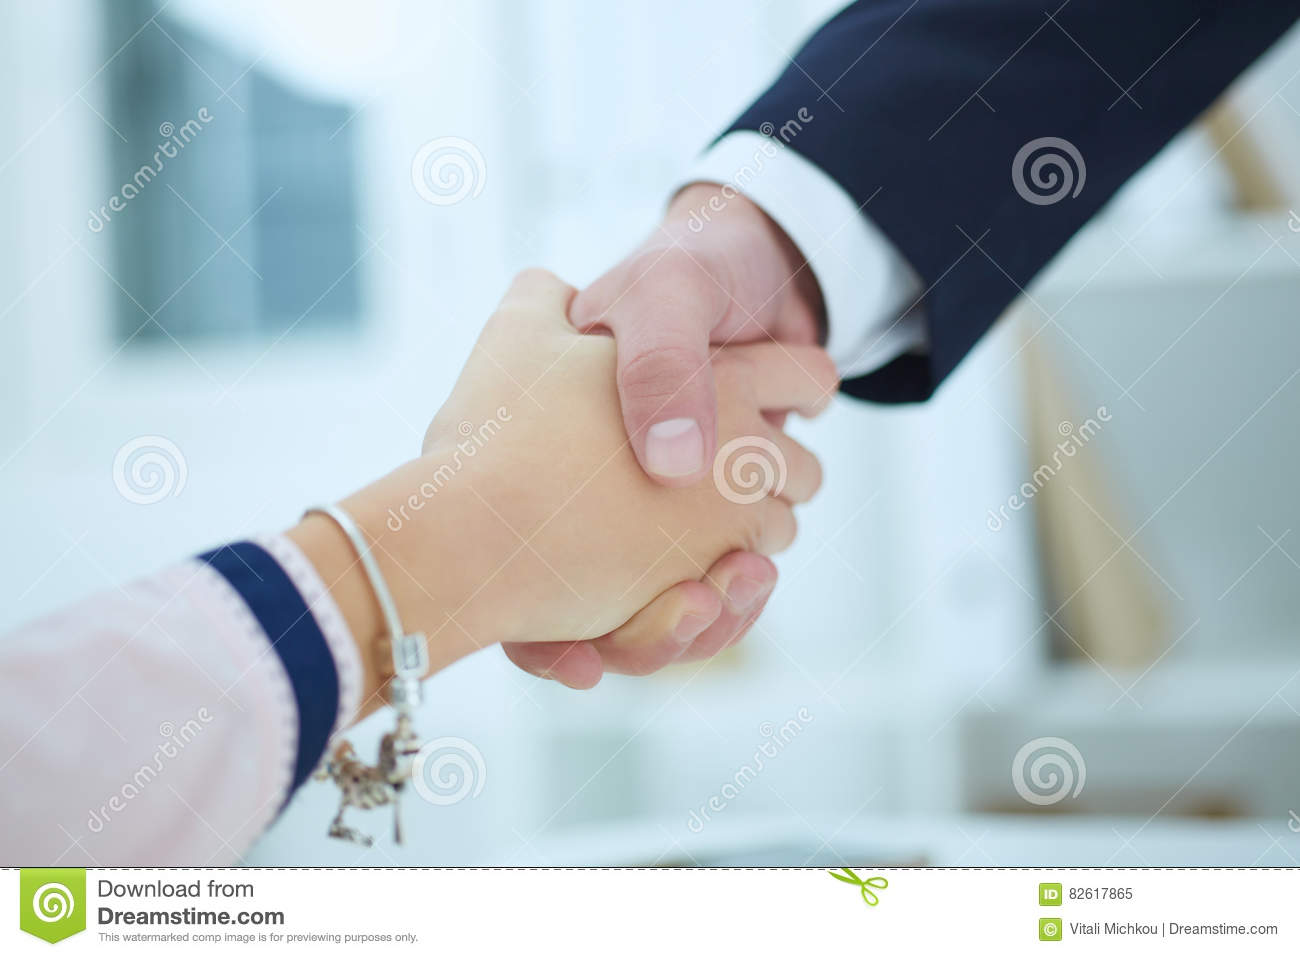 Partners Made Deal Sealed With Handclasp Formal Greeting Gesture